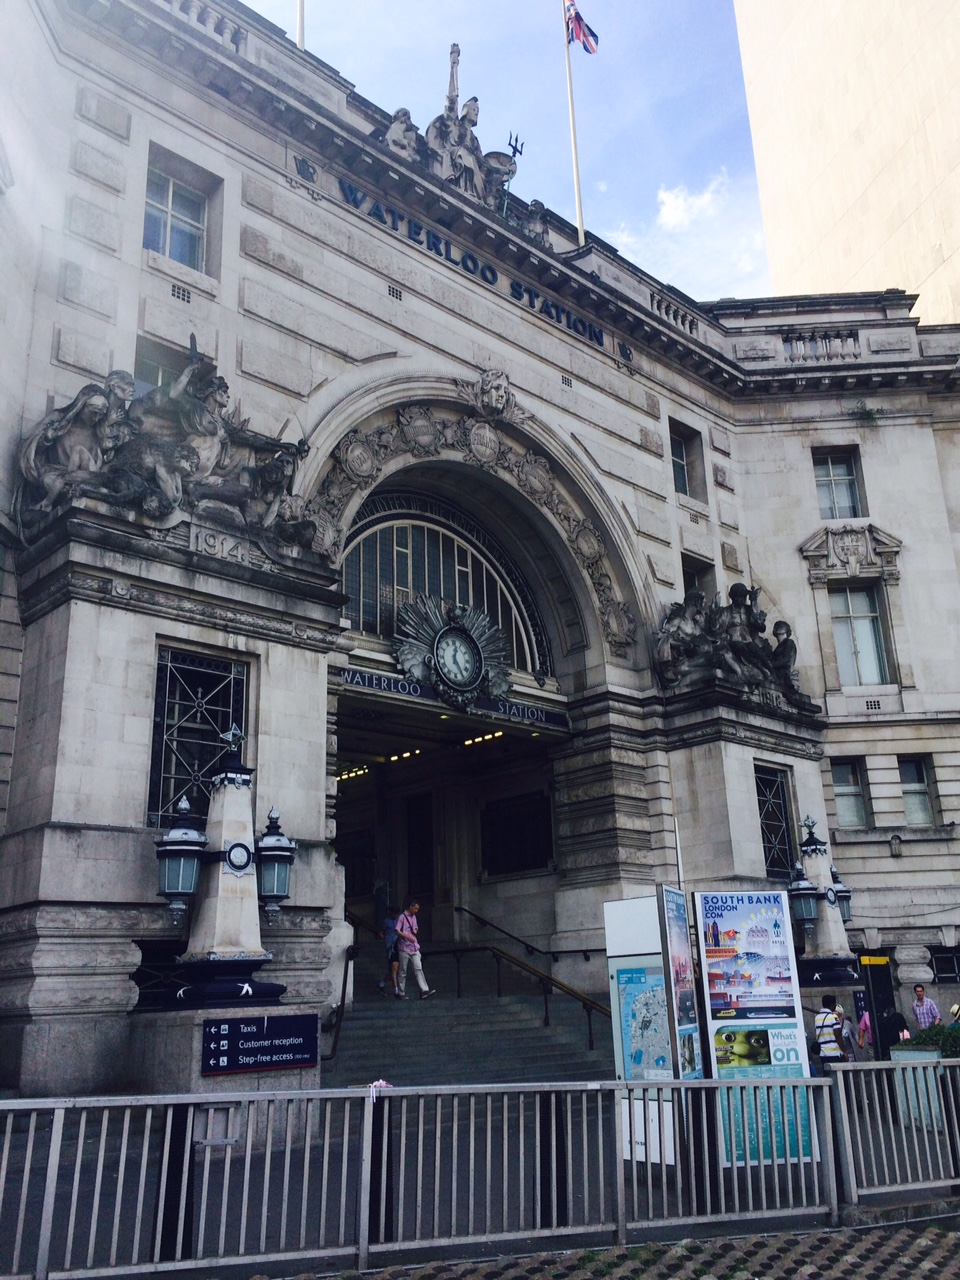 Waterloo Station…a song by the Kinks about, Waterloo Station!